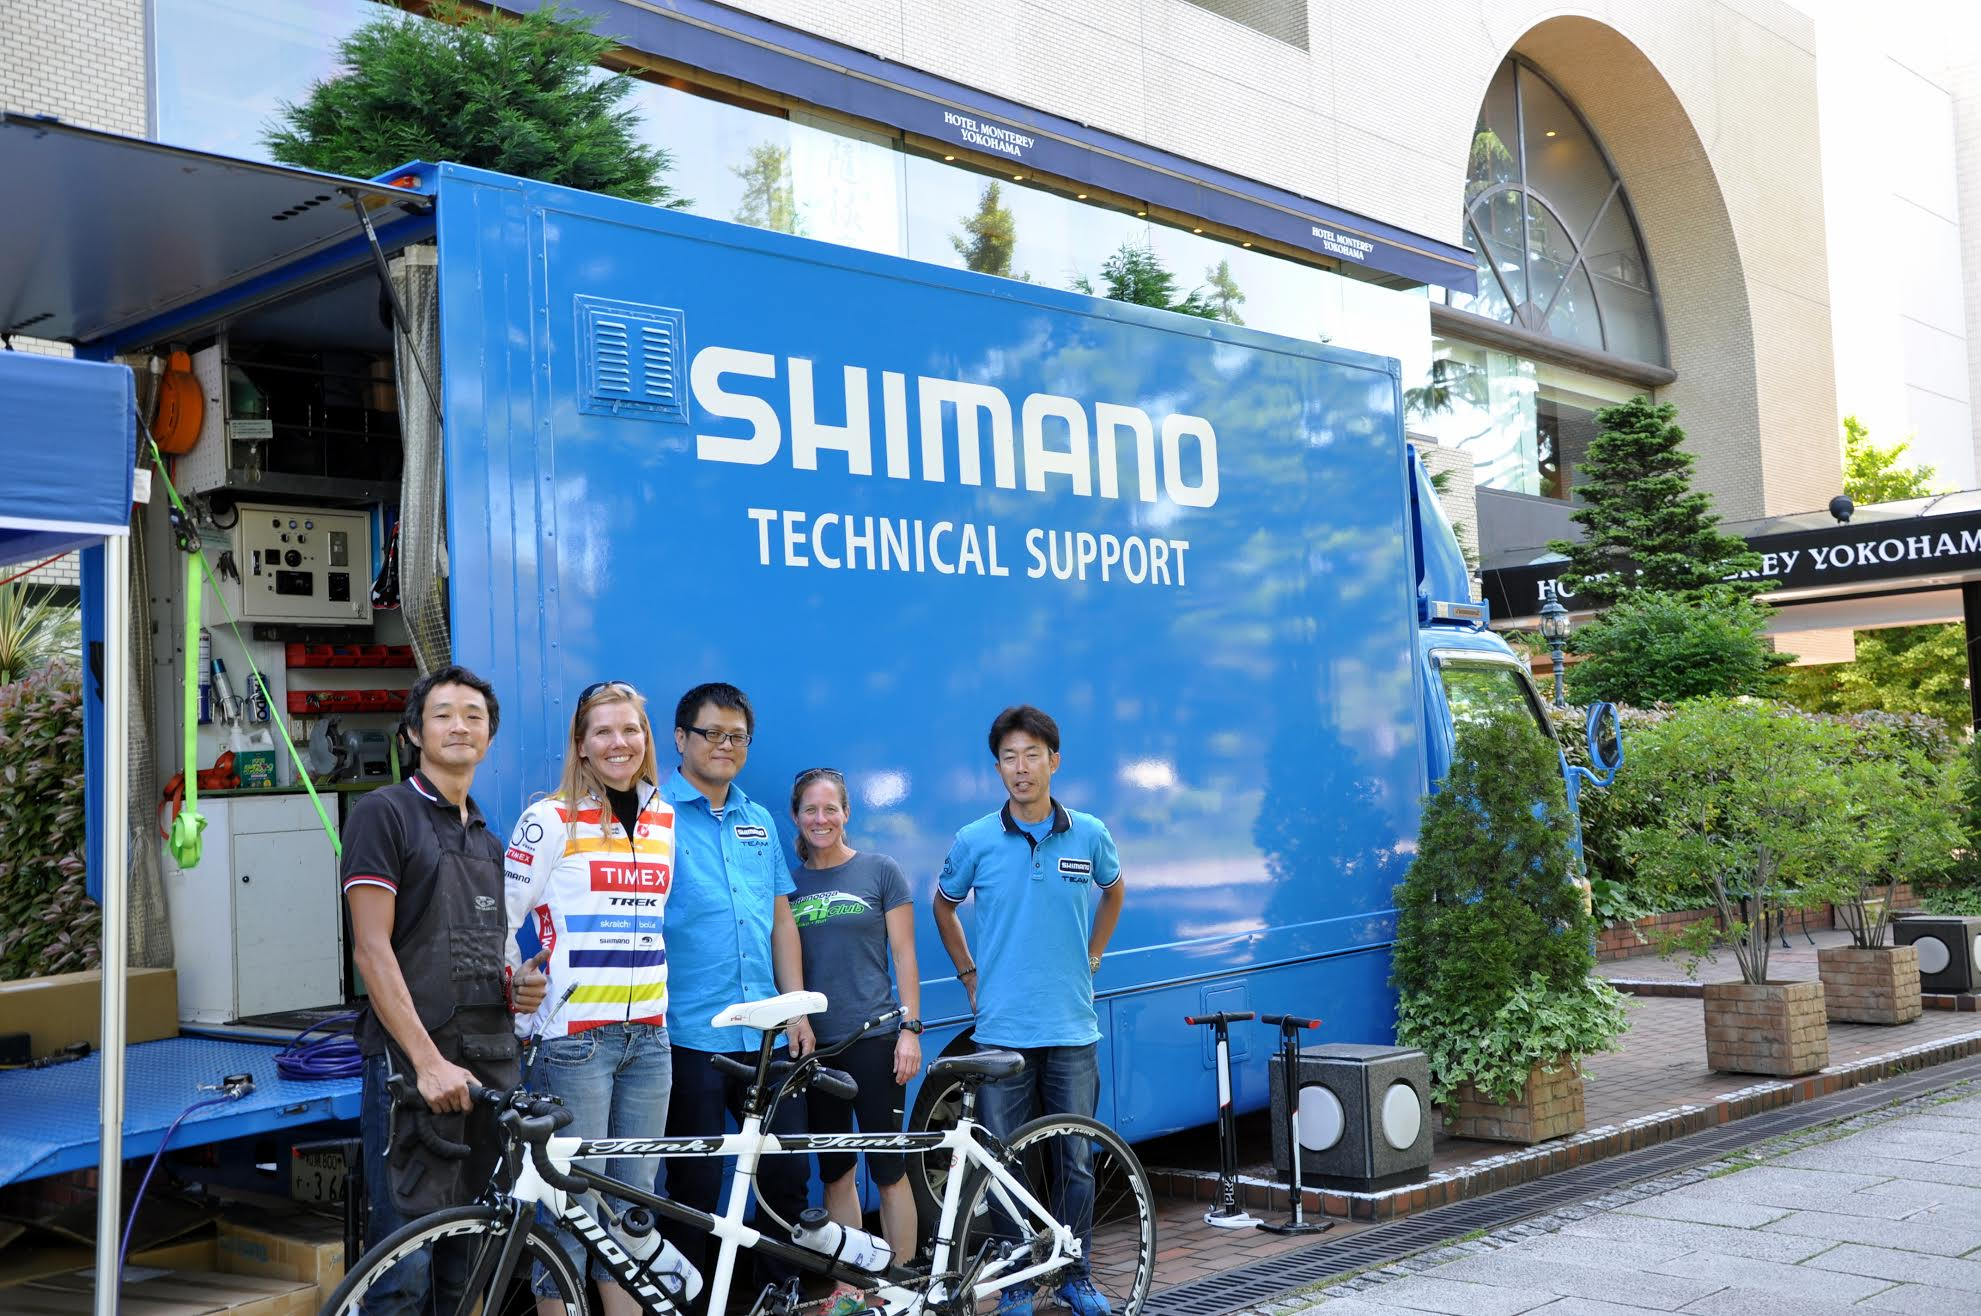 Helen and Liz hanging out with the crew at Shimano